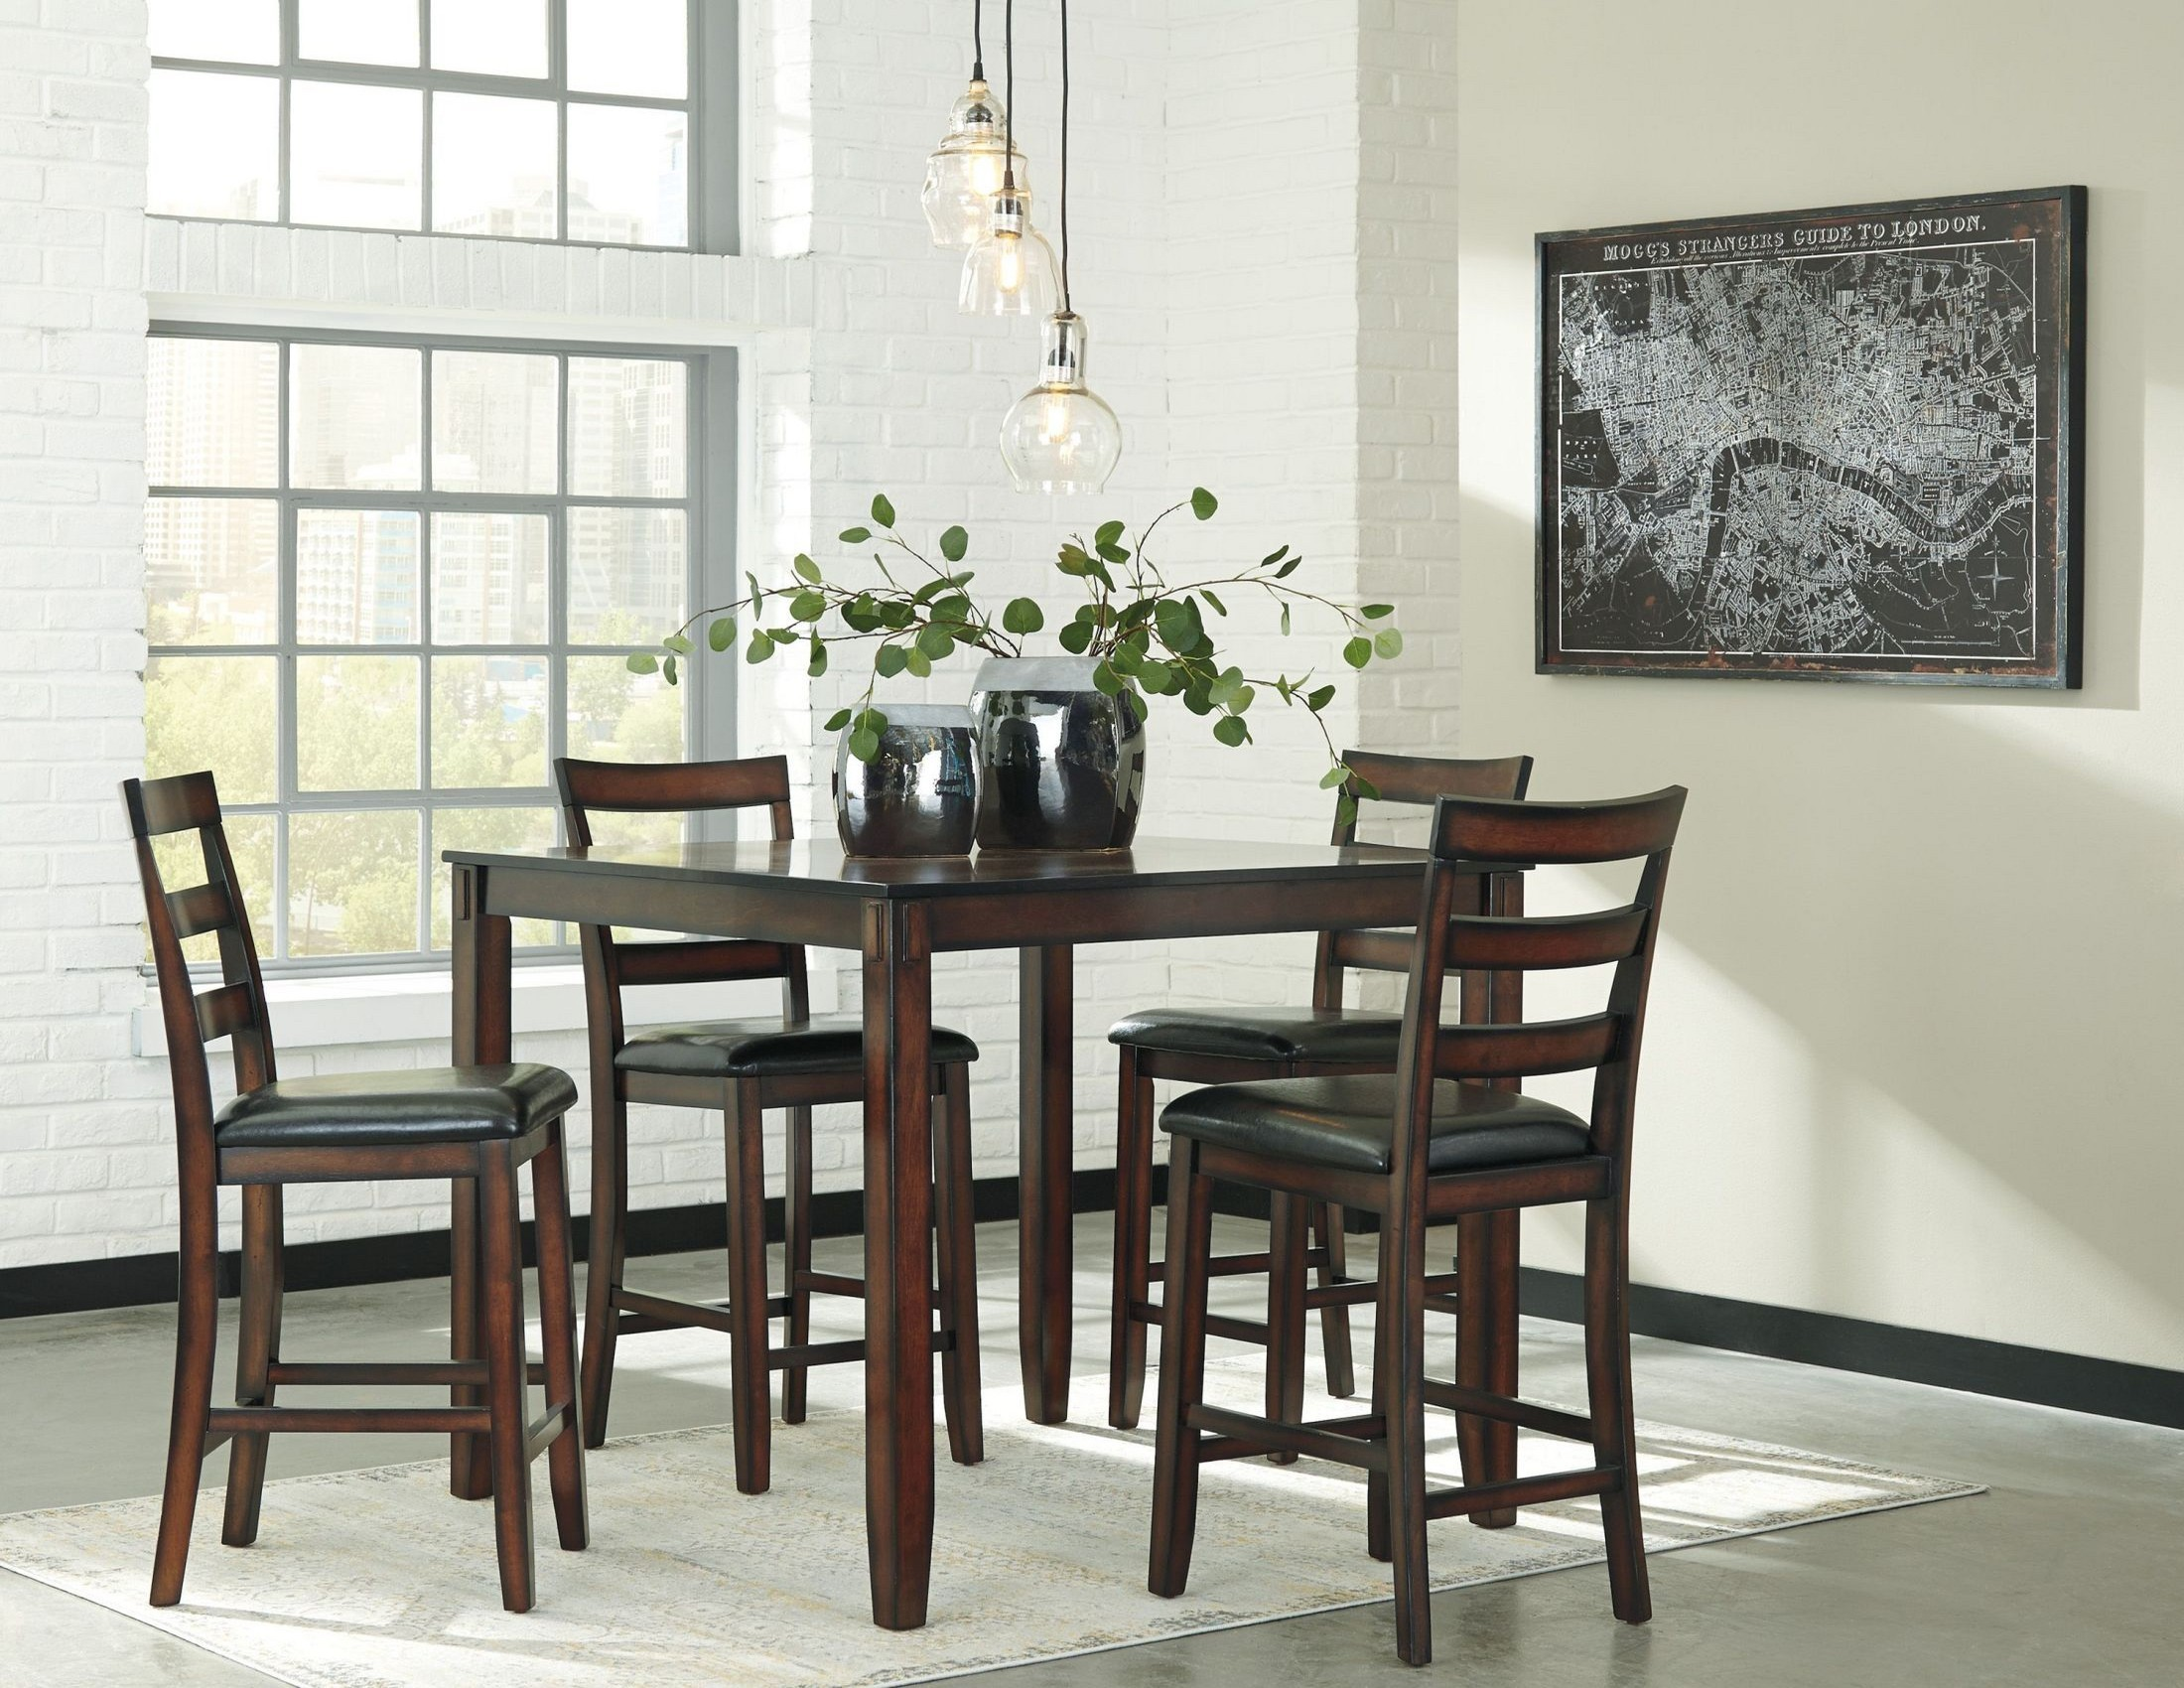 Coviar Brown 5 Piece Counter Height Dining Room Set from Ashley ...